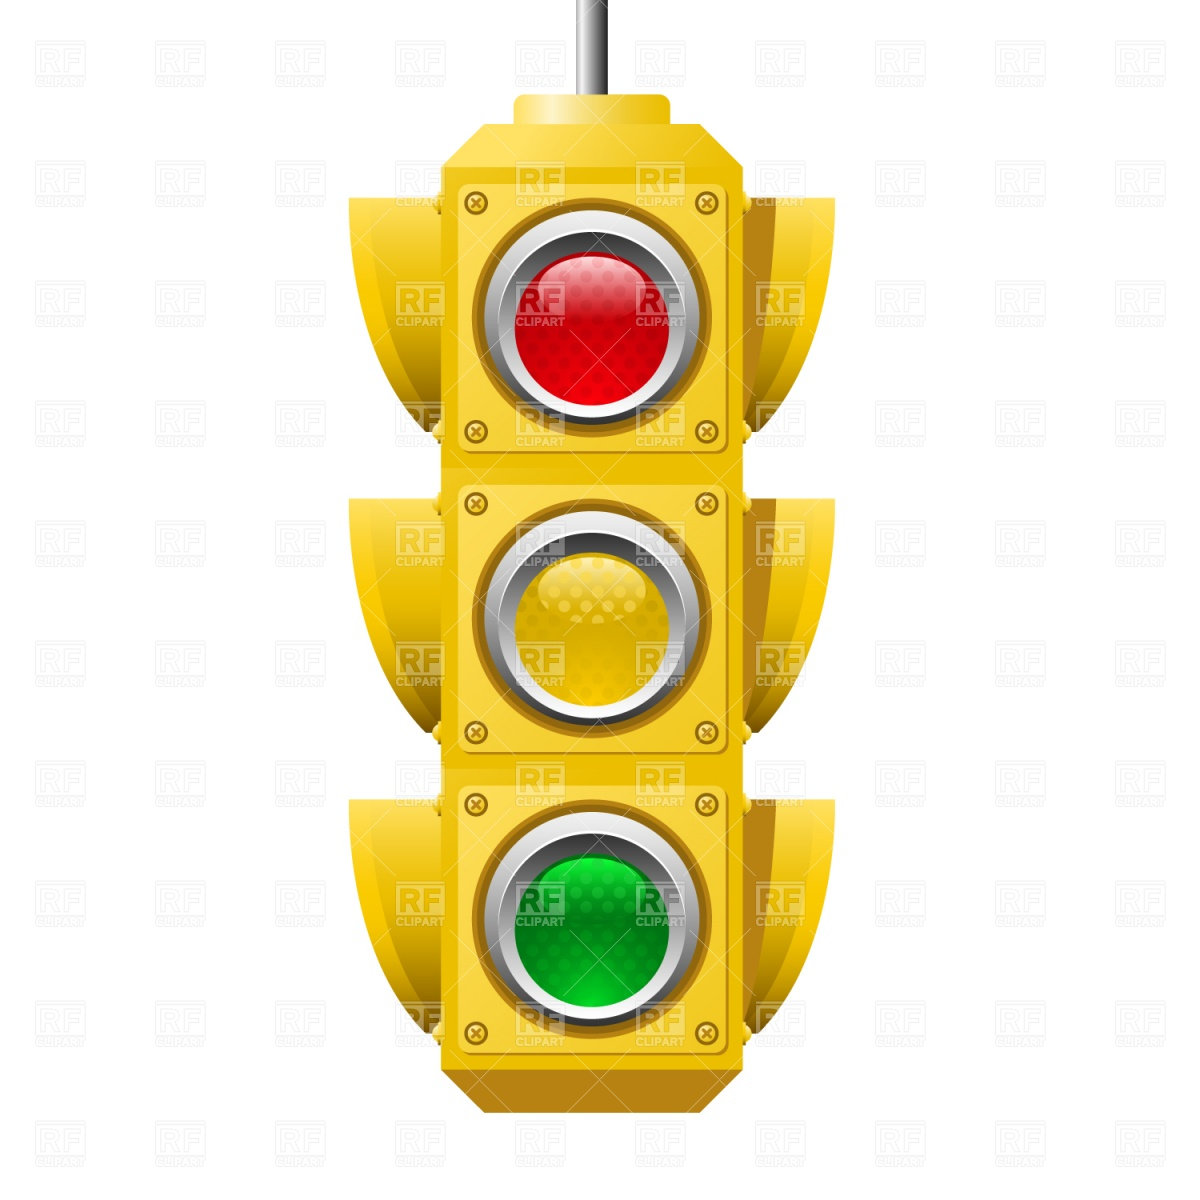 Warning Light Clipart Stop Light Vector At Getdrawings Free For Personal Use Stop